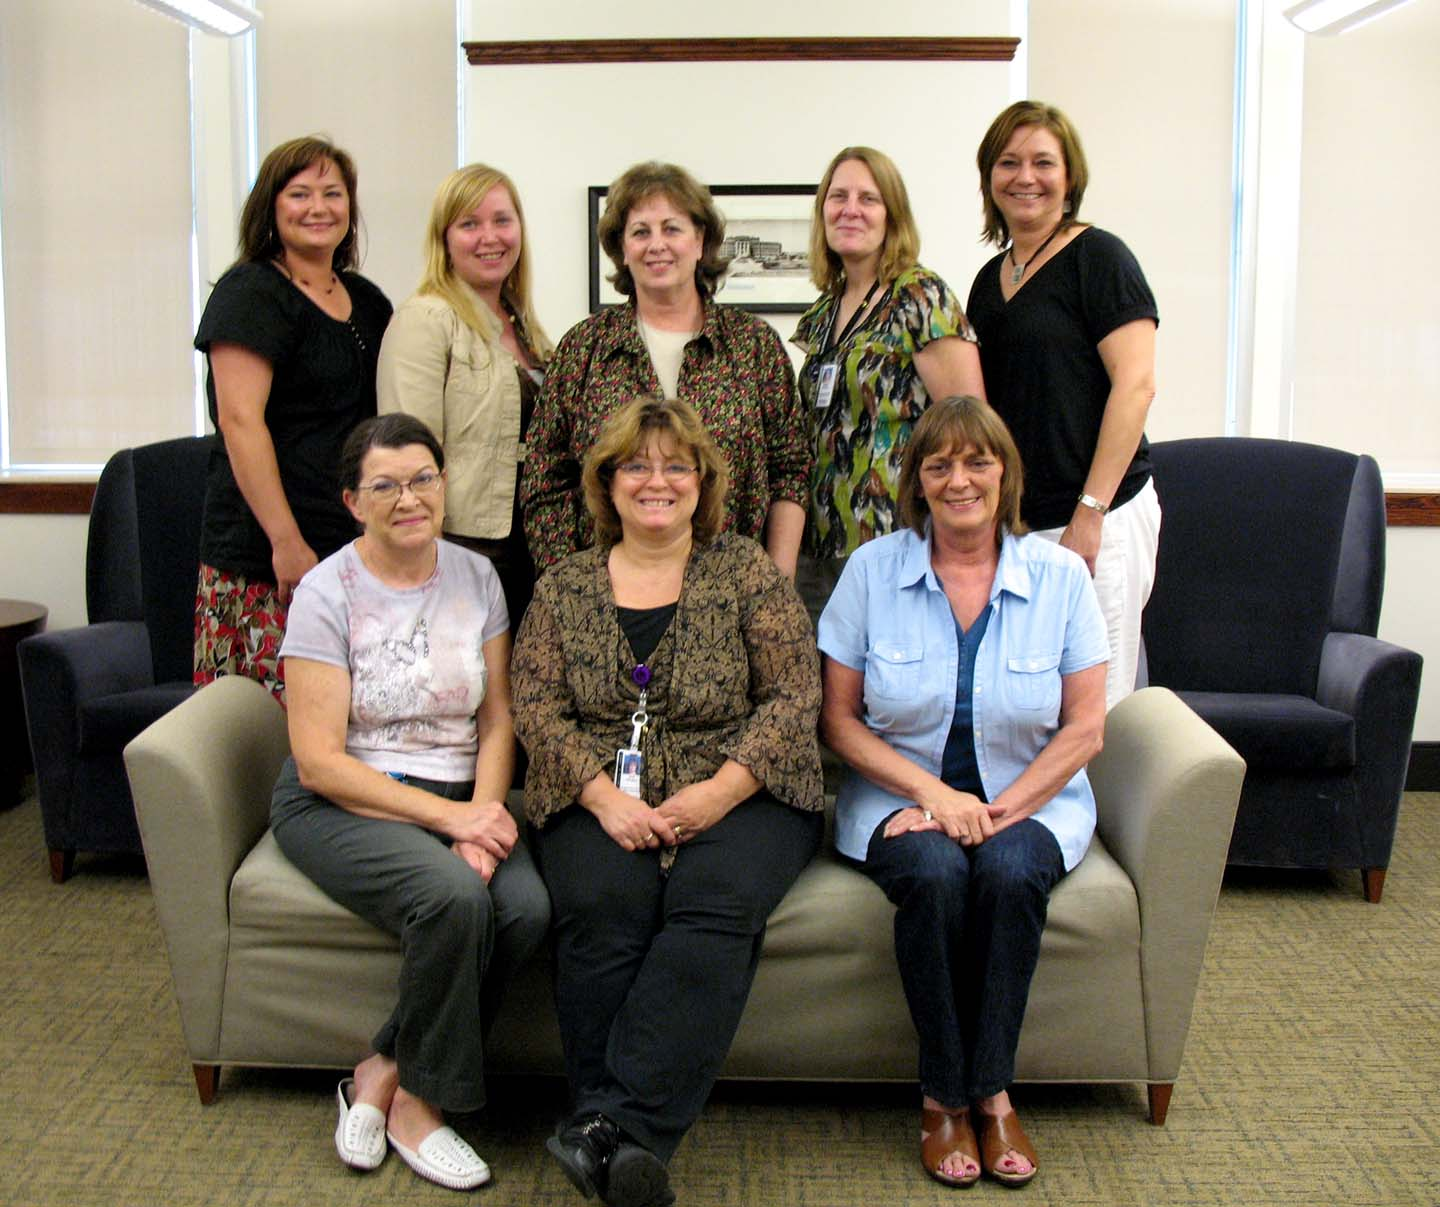 School of Allied Health Professions Staff Leadership Council